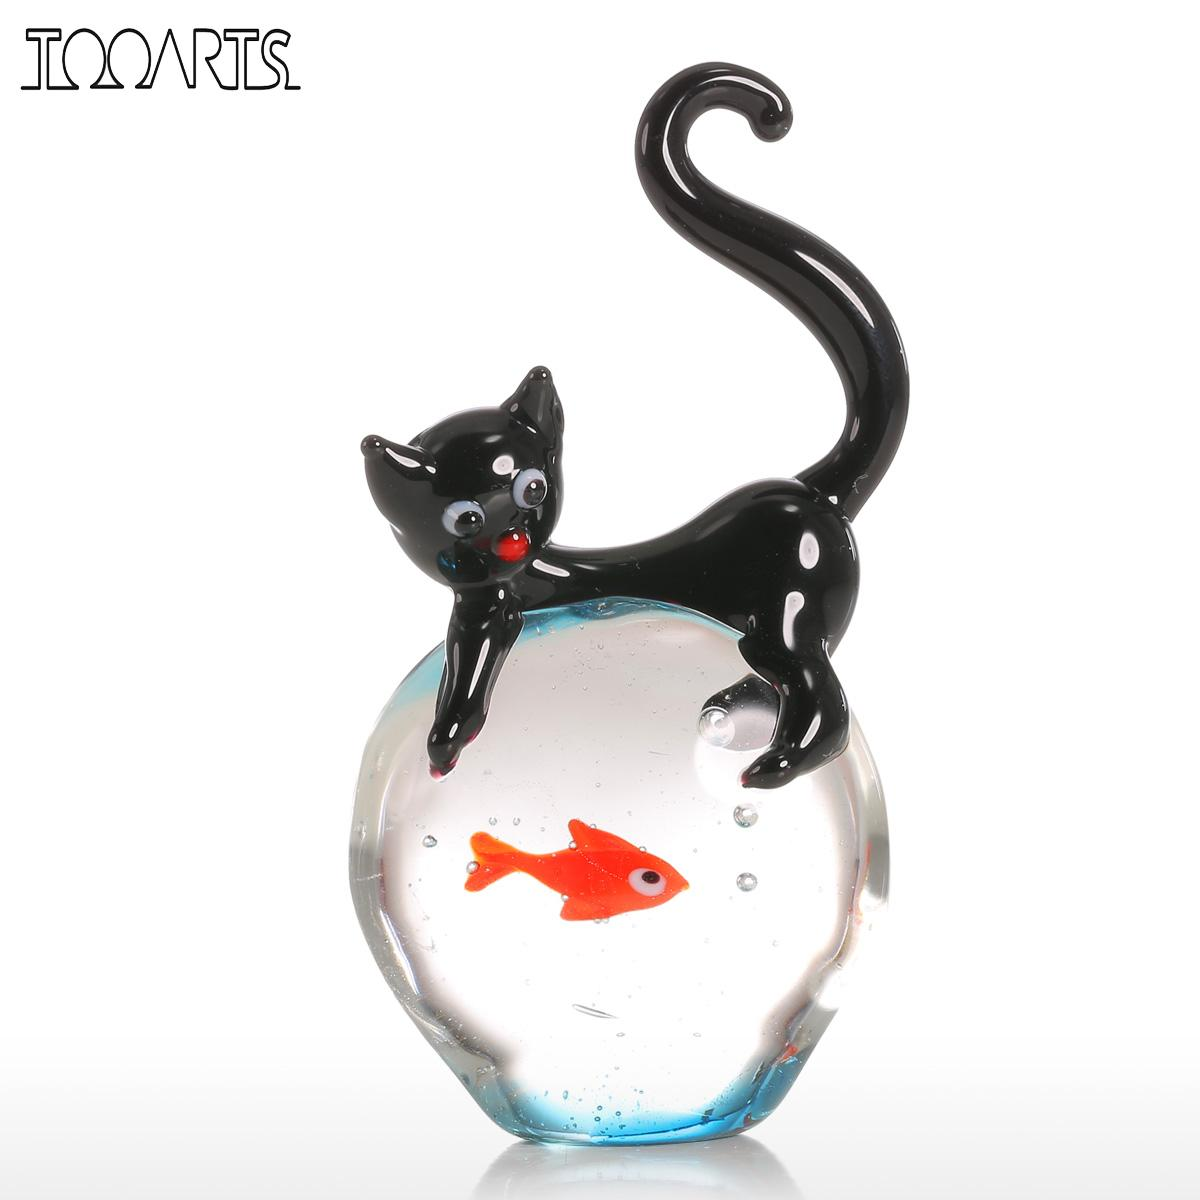 Tooarts Crystal Ball Cat And Goldfish Gift Glass Ball Ornament Animal Figurine Handblown Home Decor Globe Glass Sphere